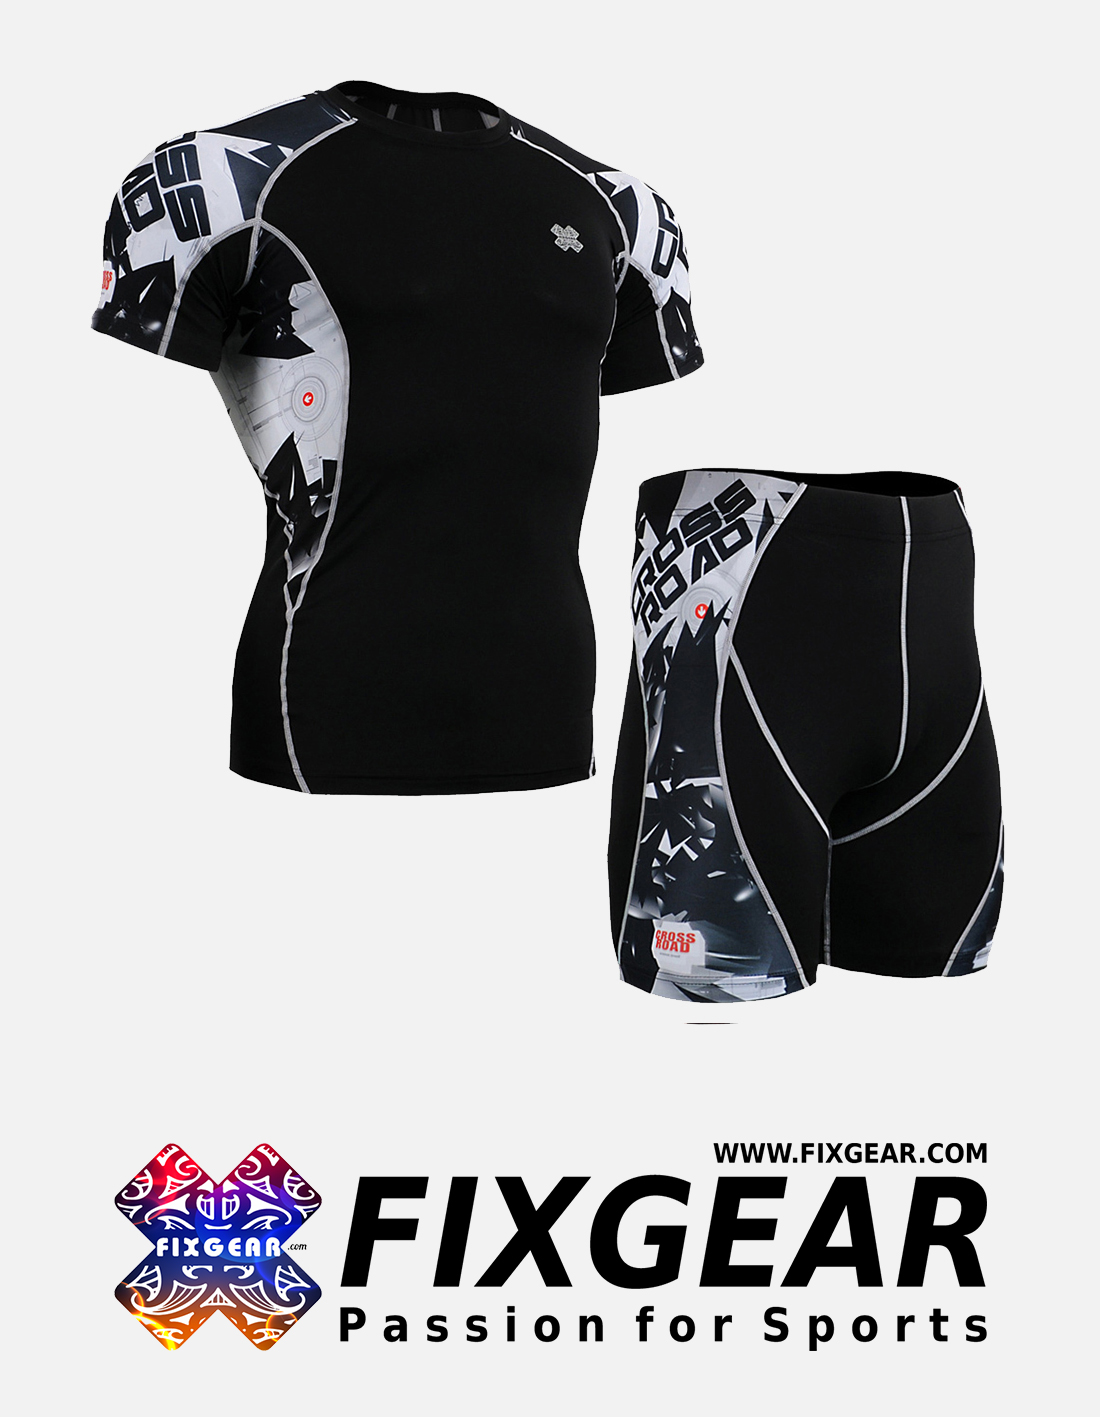 FIXGEAR C2S-P2S-B17 Set Compression Base Layer Shirt & Compression Drawer Shorts